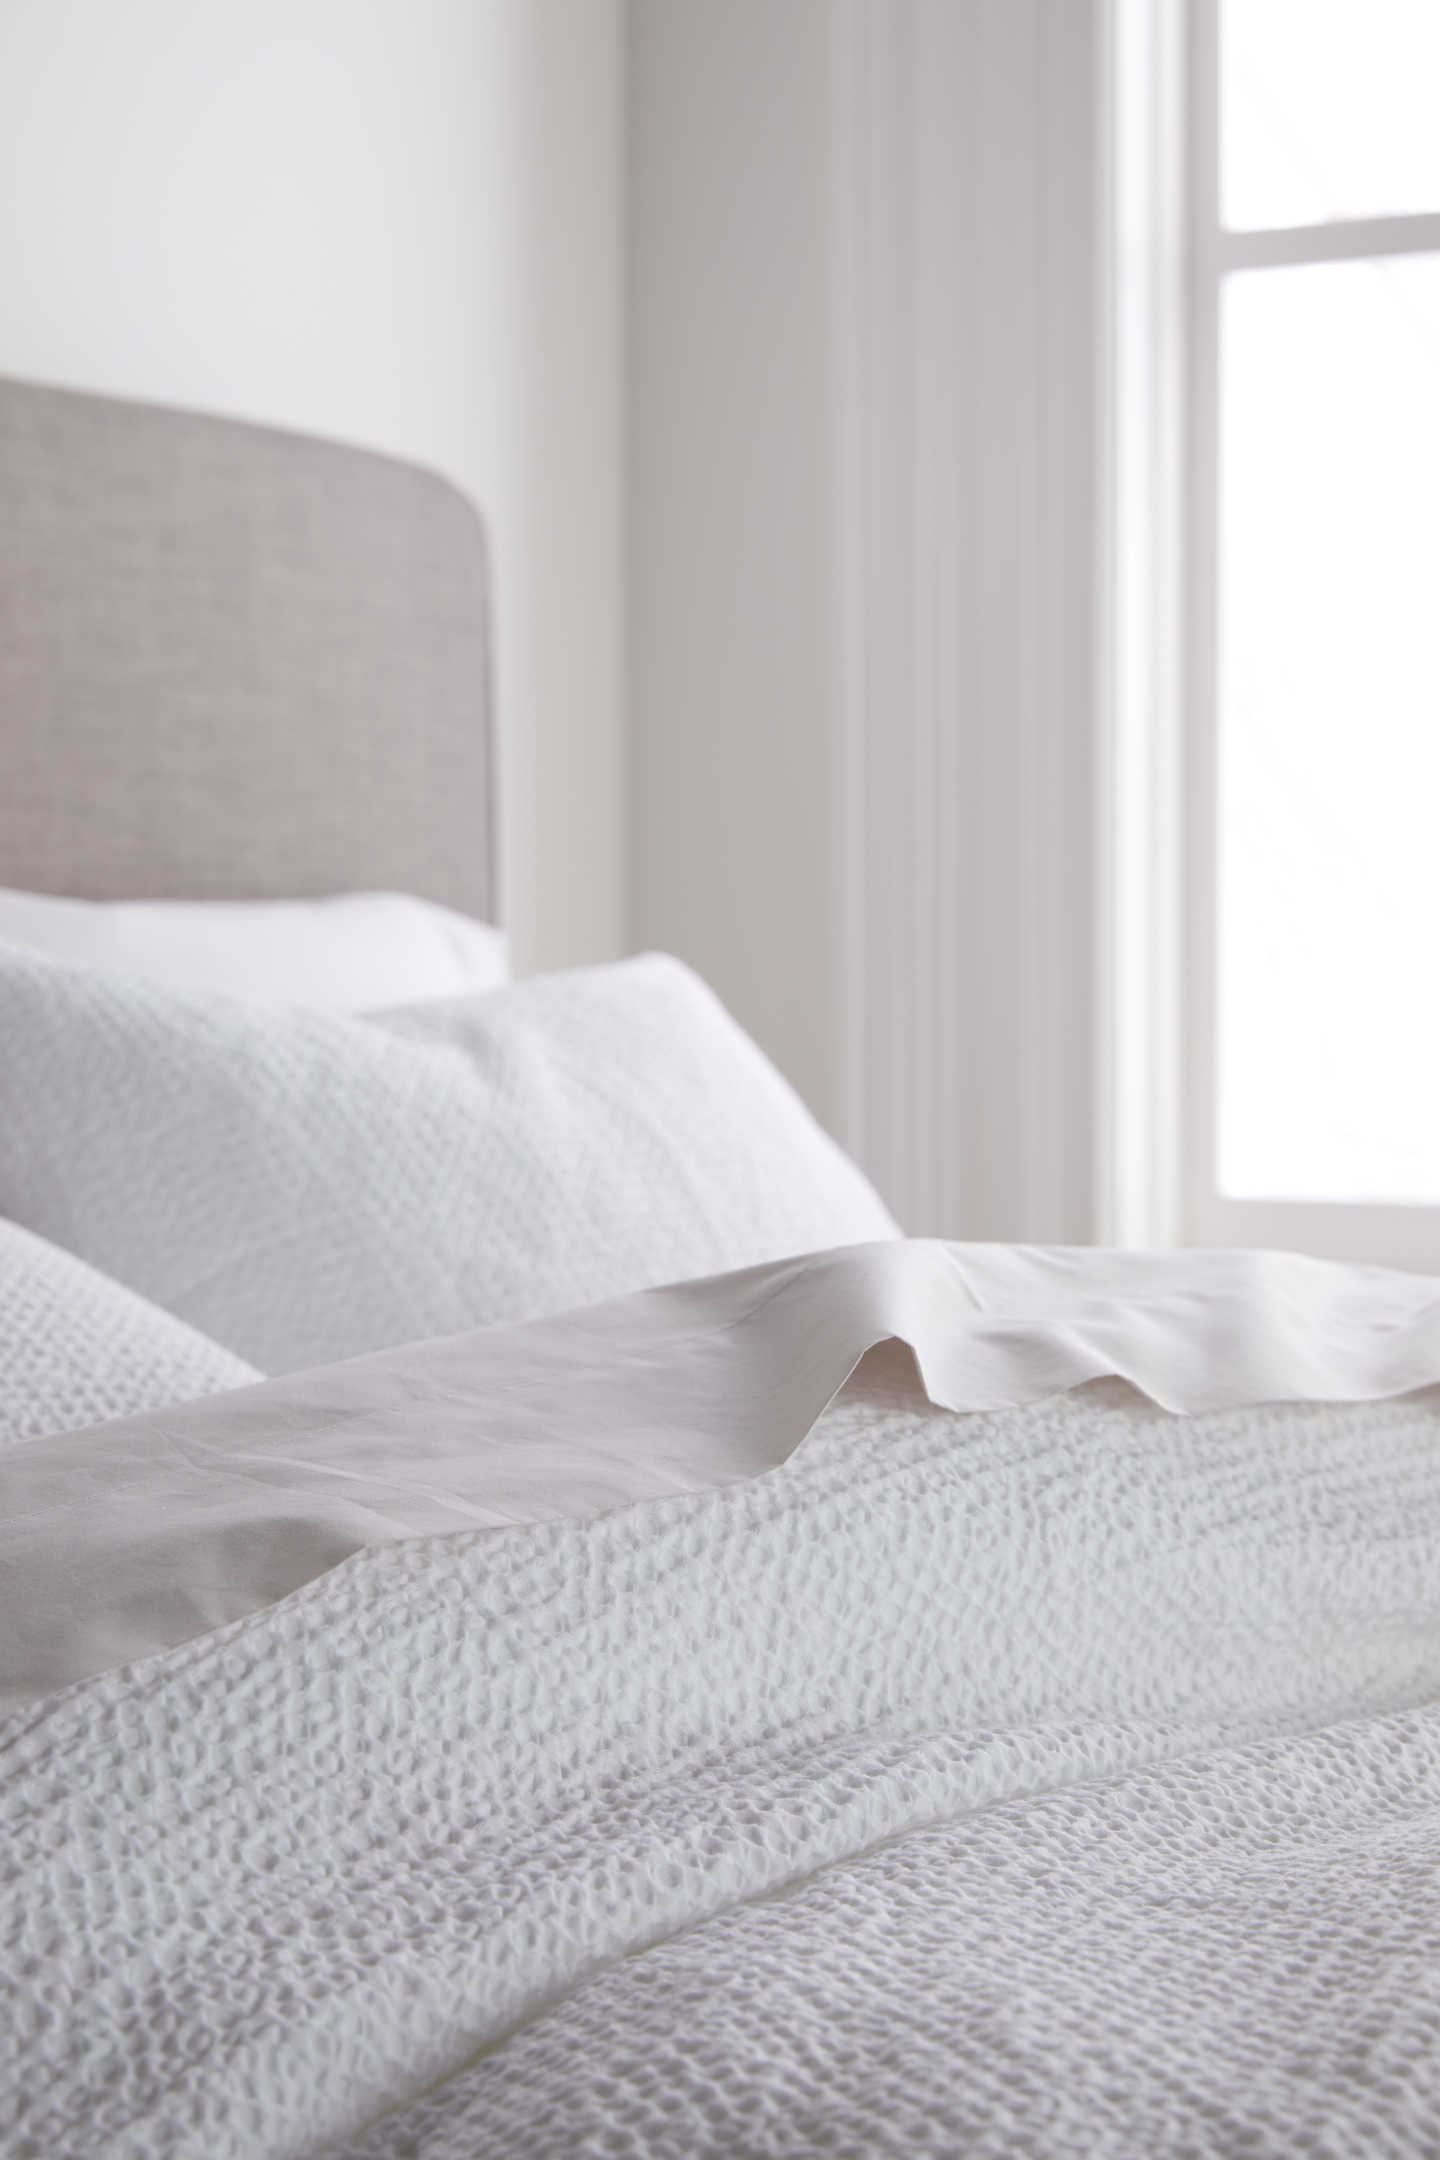 waffle duvet cover on bed from angle in white